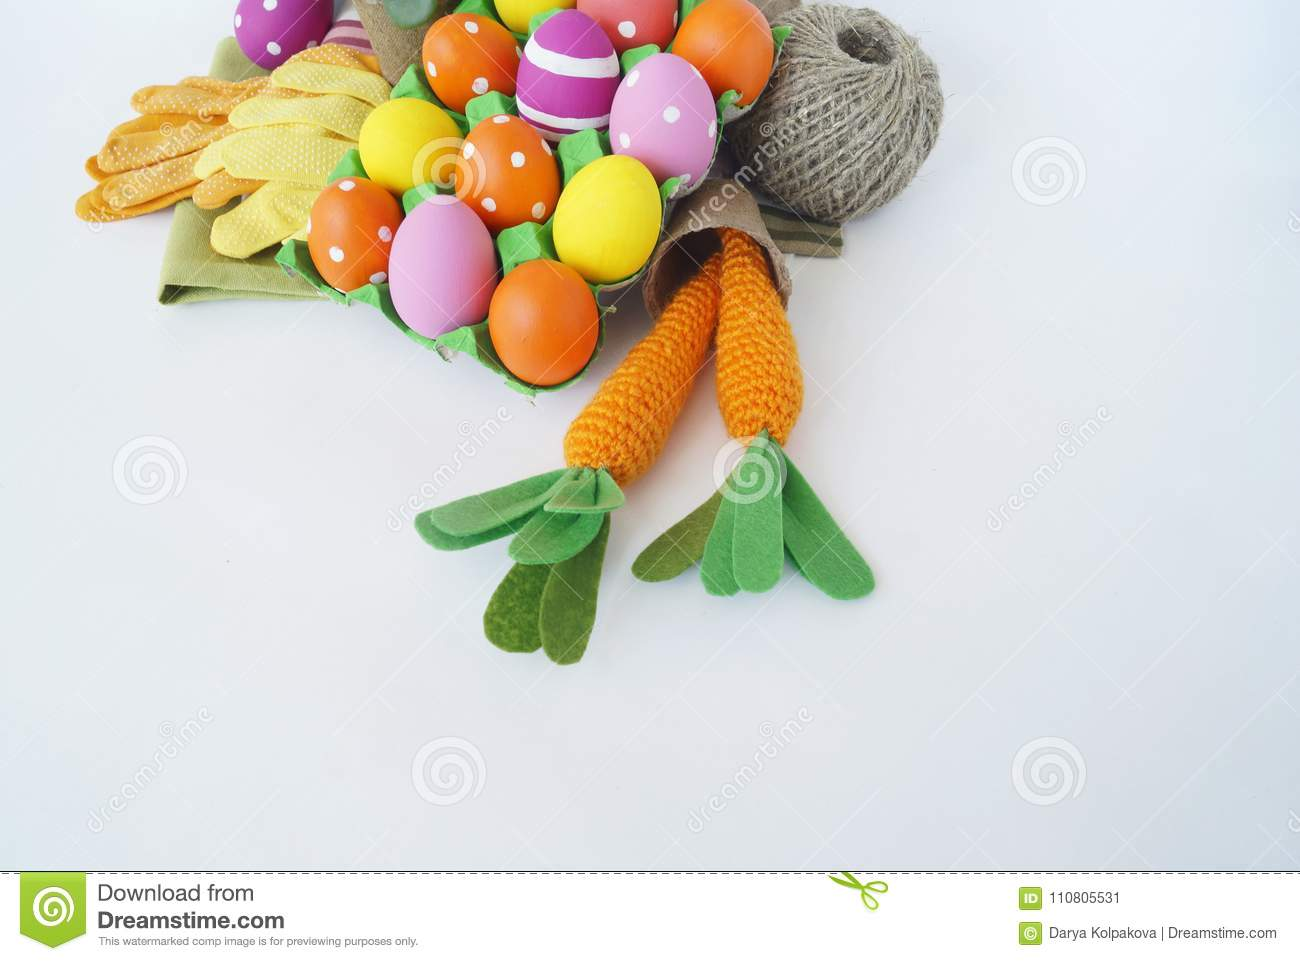 Easter Holiday. Easter Eggs And Carrots. Knitted Carrot. For Planting  Tools. Garden Gloves. Knitting.